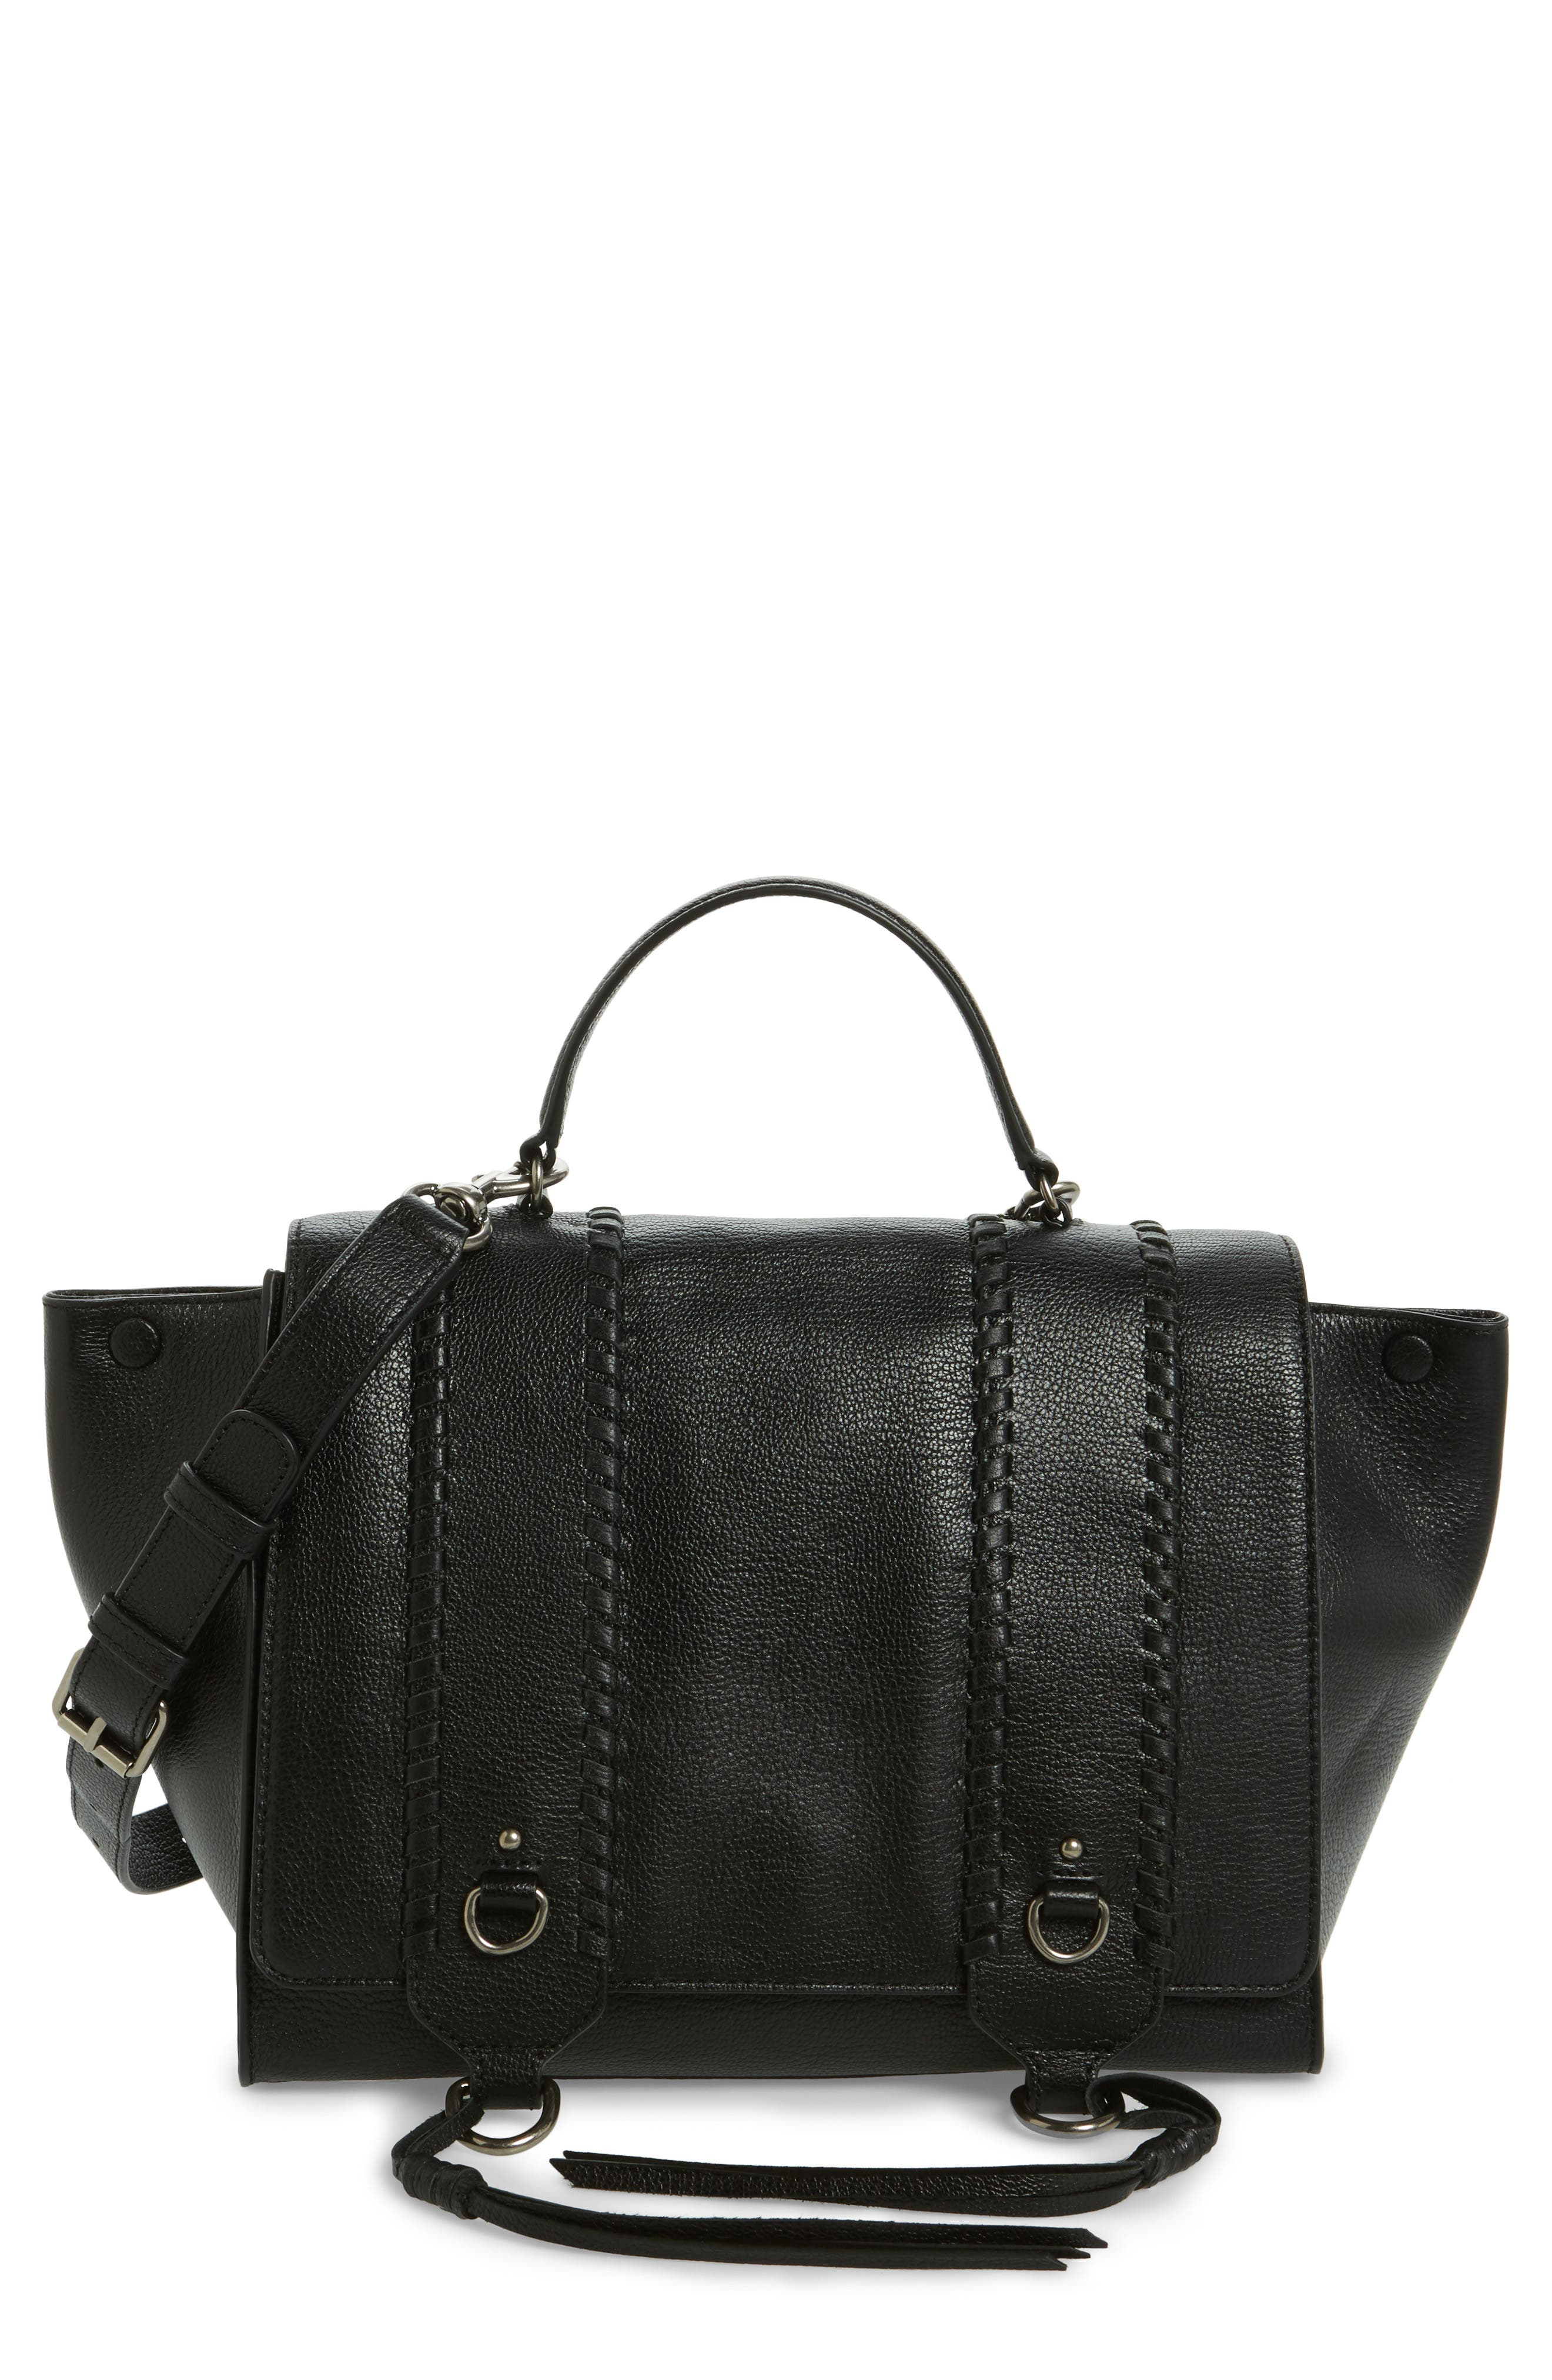 Alternate Image 1 Selected - Rebecca Minkoff Paige Leather Satchel